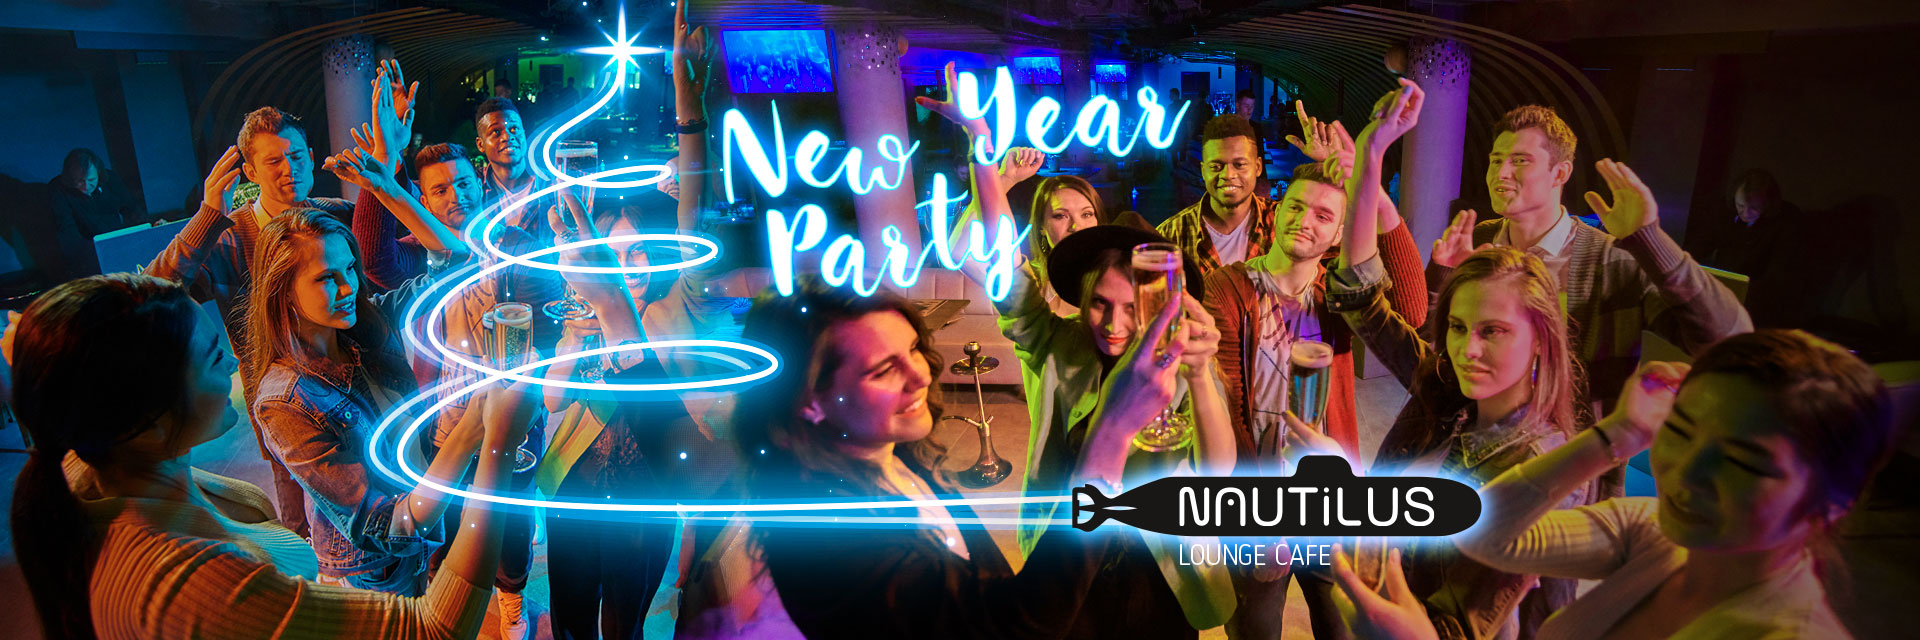 New Year Party 2021 в NAUTILUS Lounge Cafe в RESORT & SPA HOTEL NEMO, фото № 1